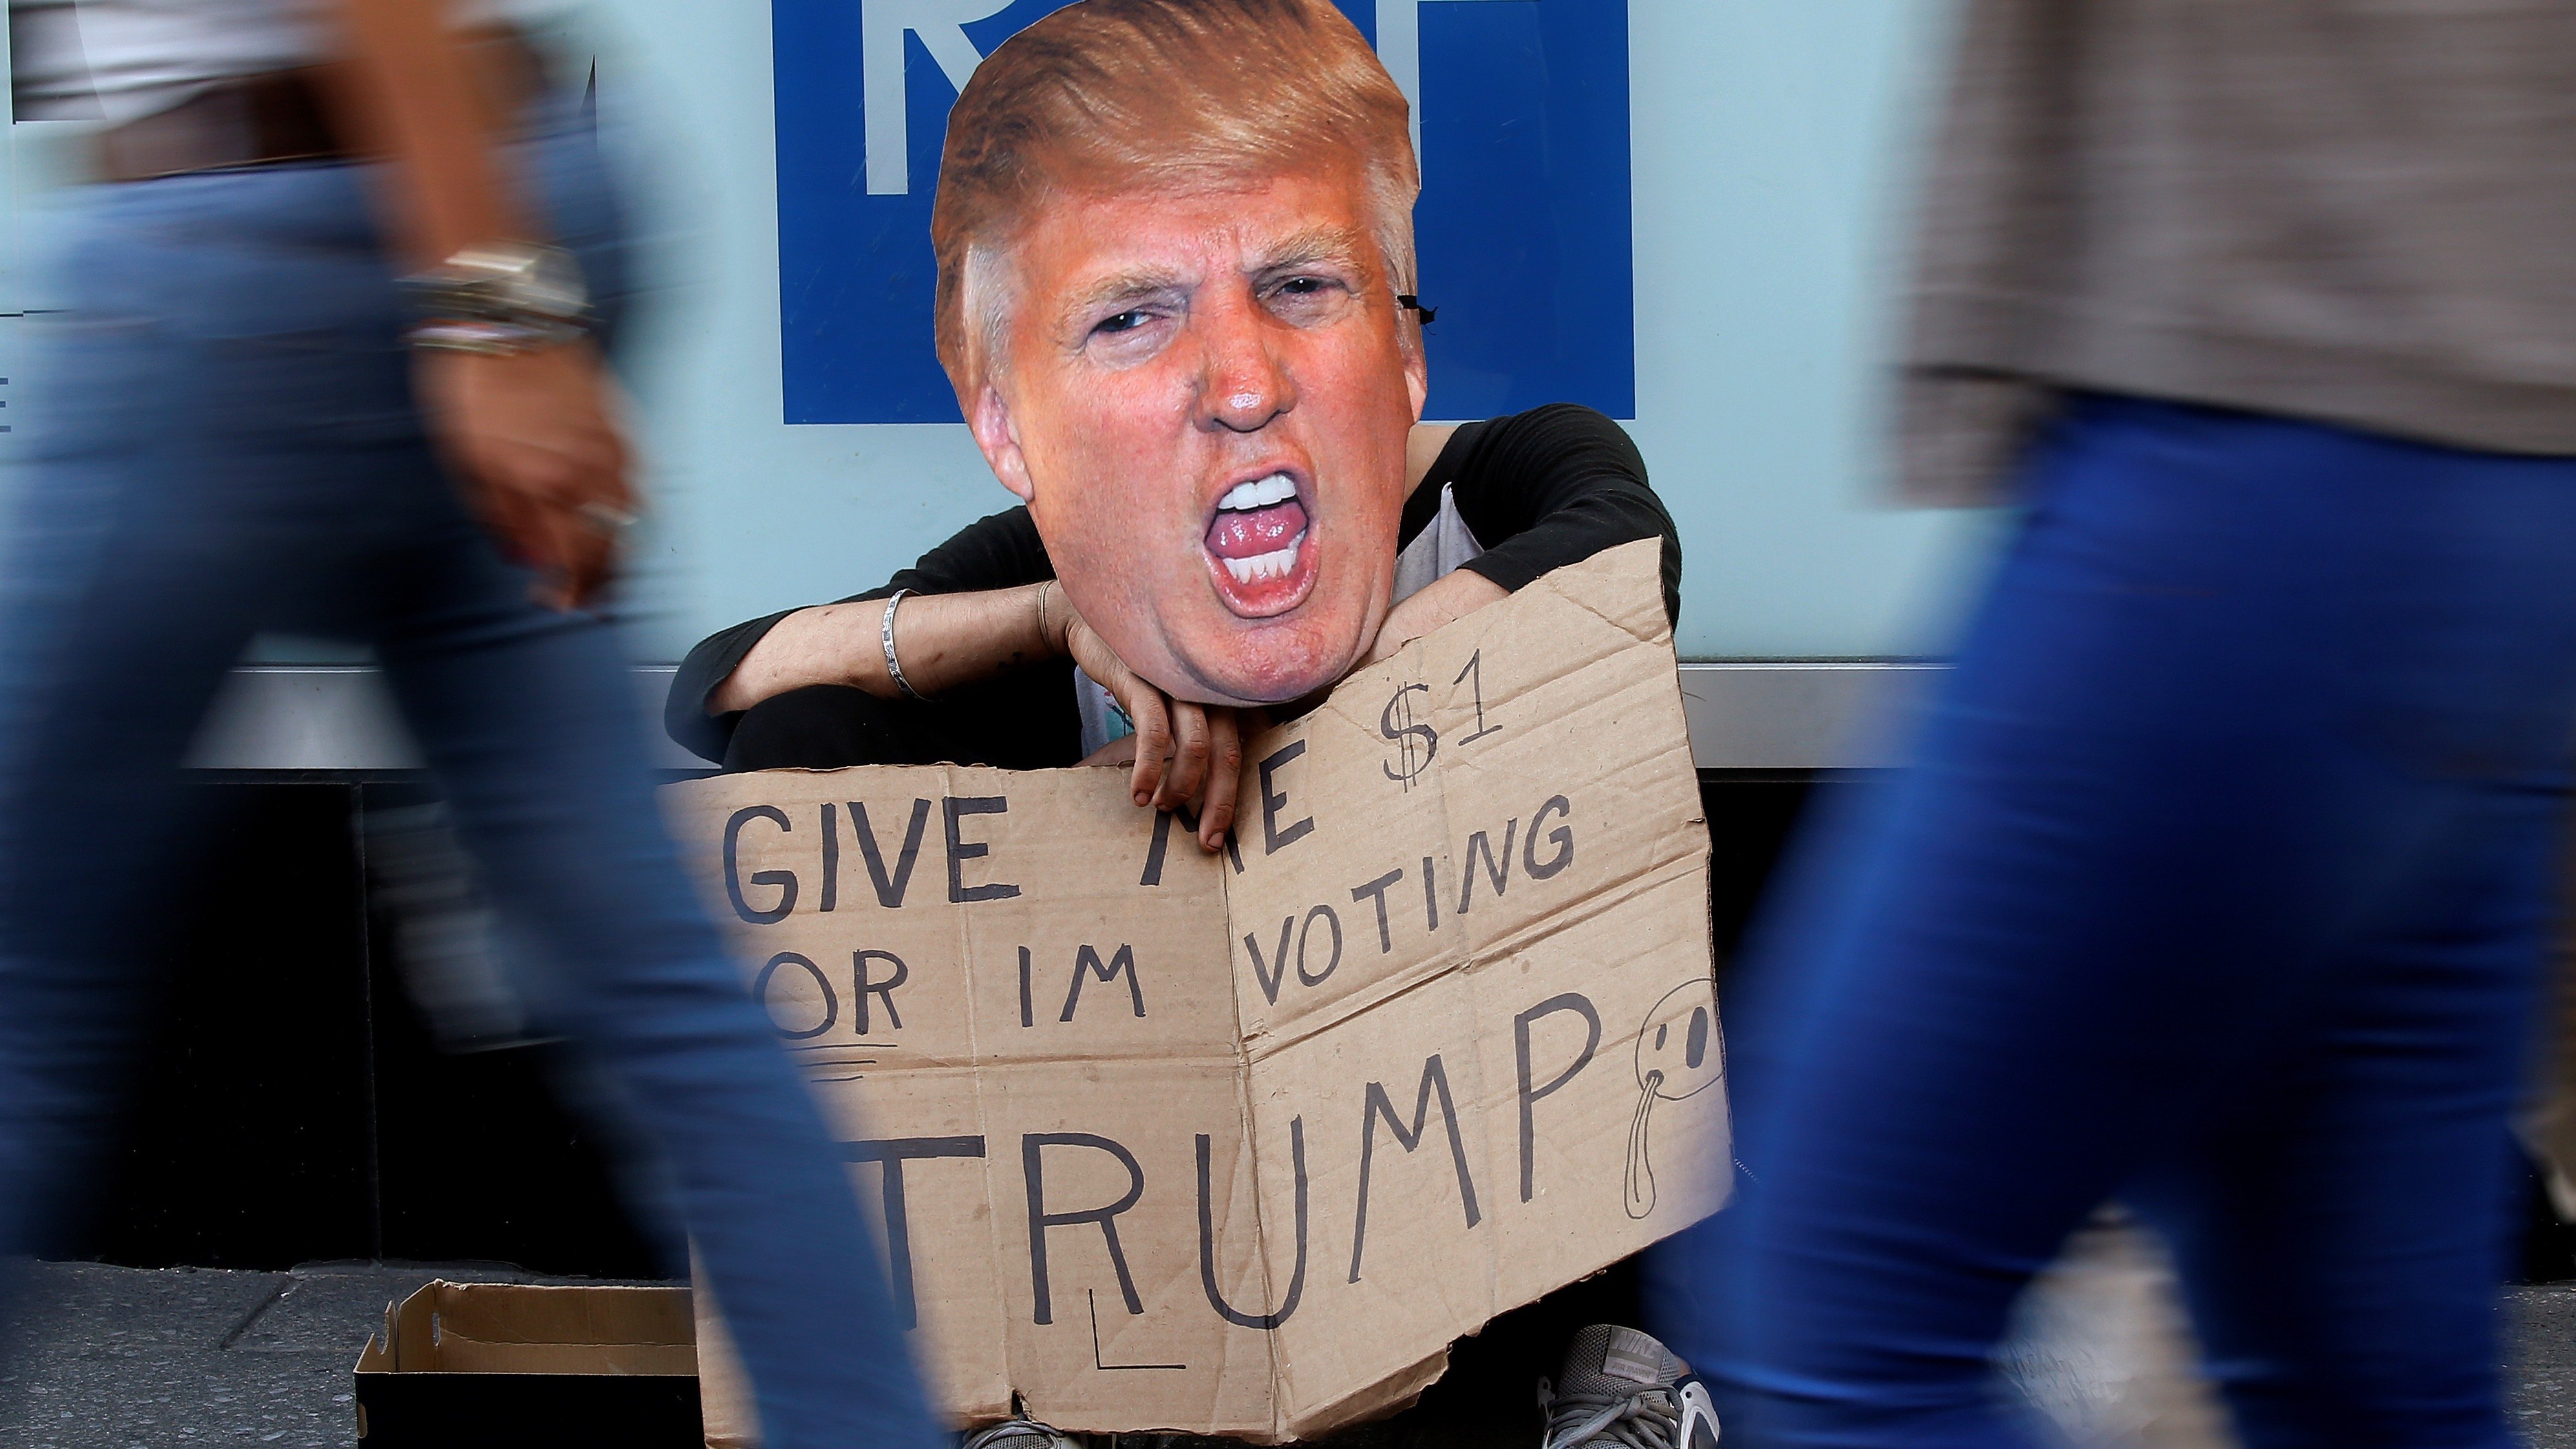 """A pan handler sits with a """"Give me $1 or Im voting for Trump"""" sign, referring to Republican presidential candidate Donald Trump, as he sits on the street in Times Square in the Manhattan borough of New York"""